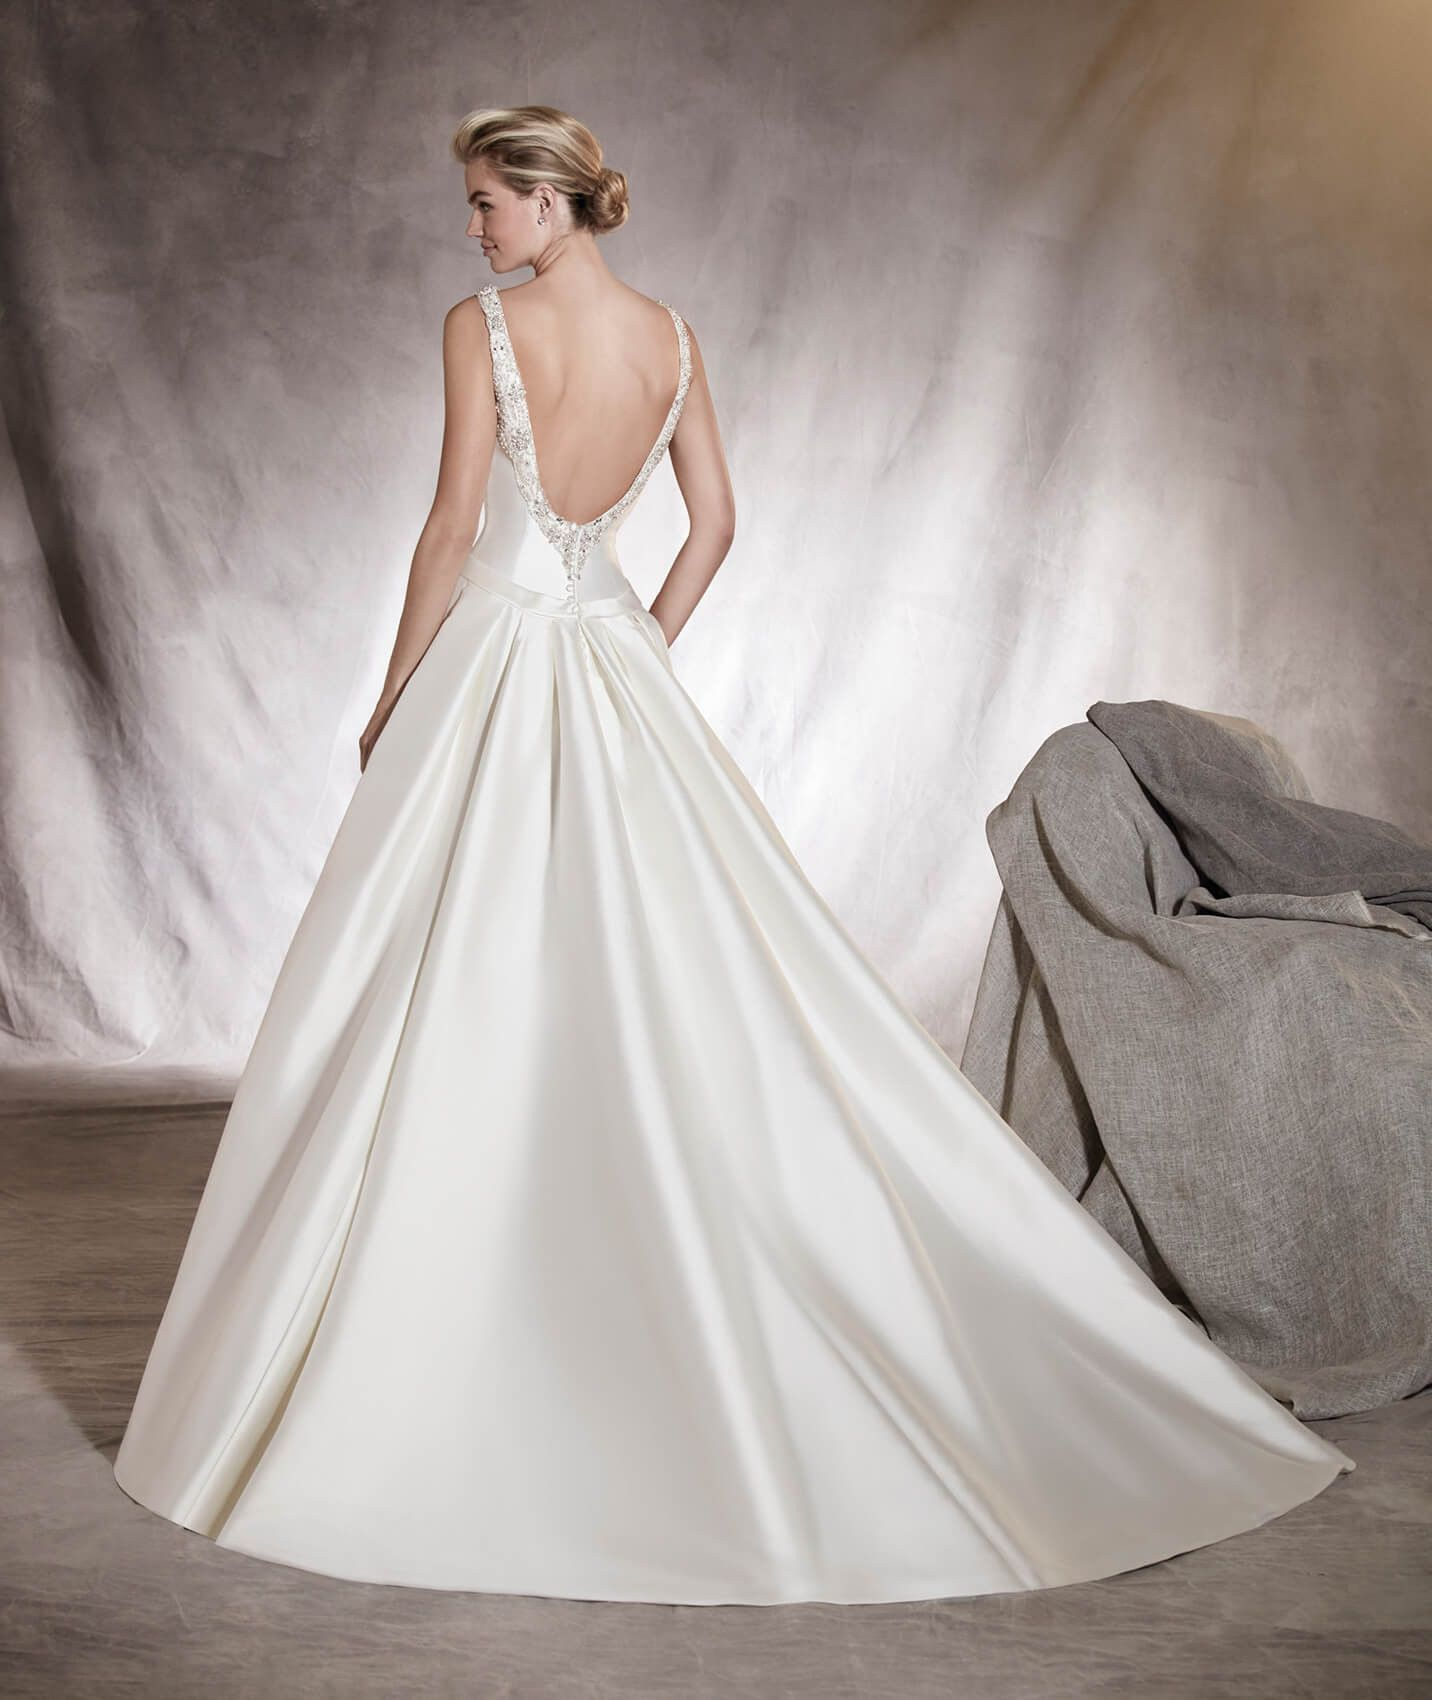 Aras Wedding Dress With A V Neckline And Gemstone Details On The Edge